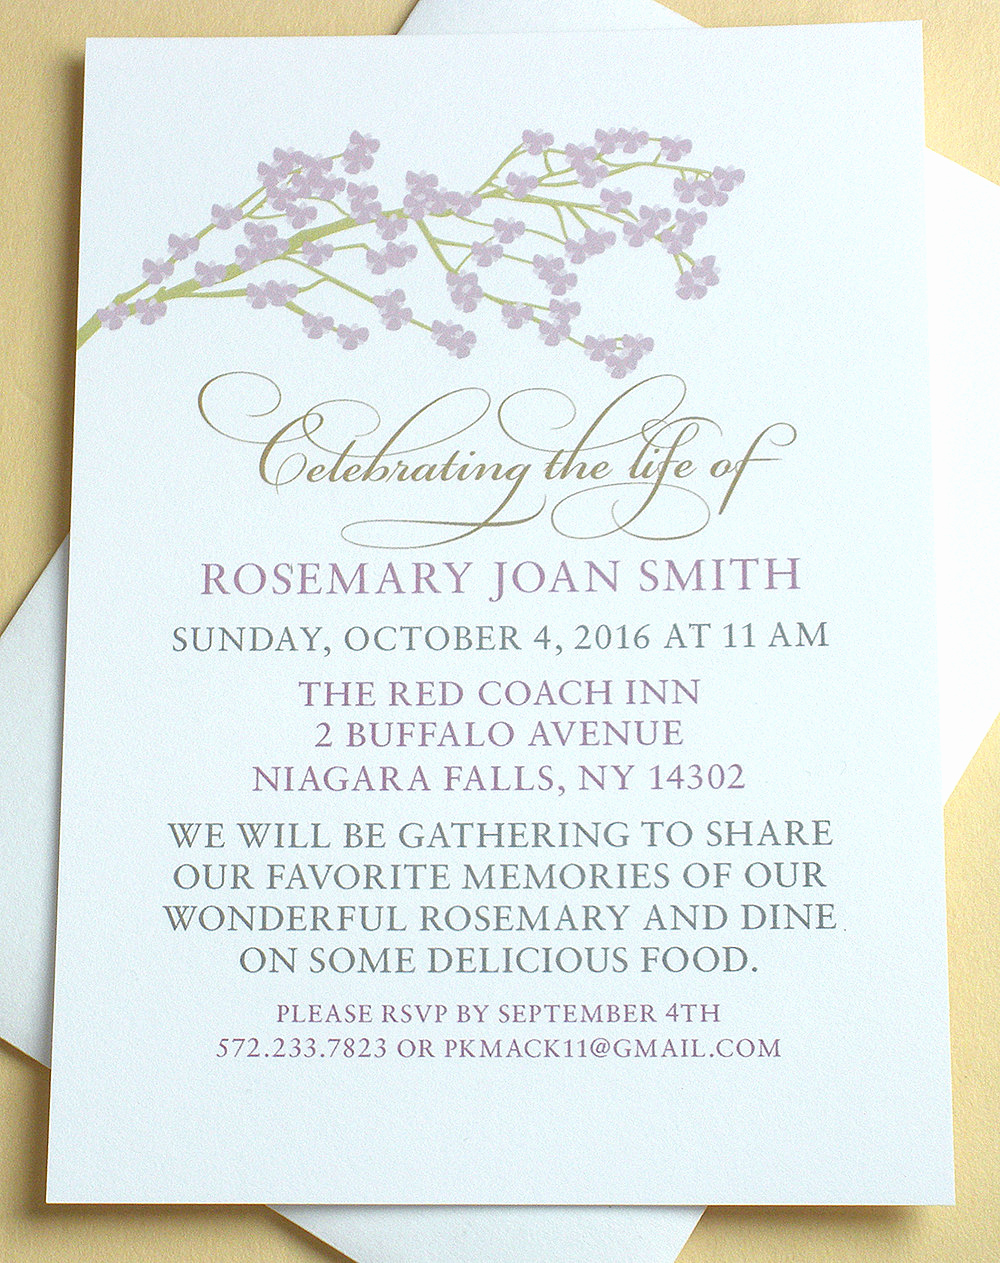 Celebration Of Life Invitation Inspirational Celebration Of Life Invitations with A Branch Of by